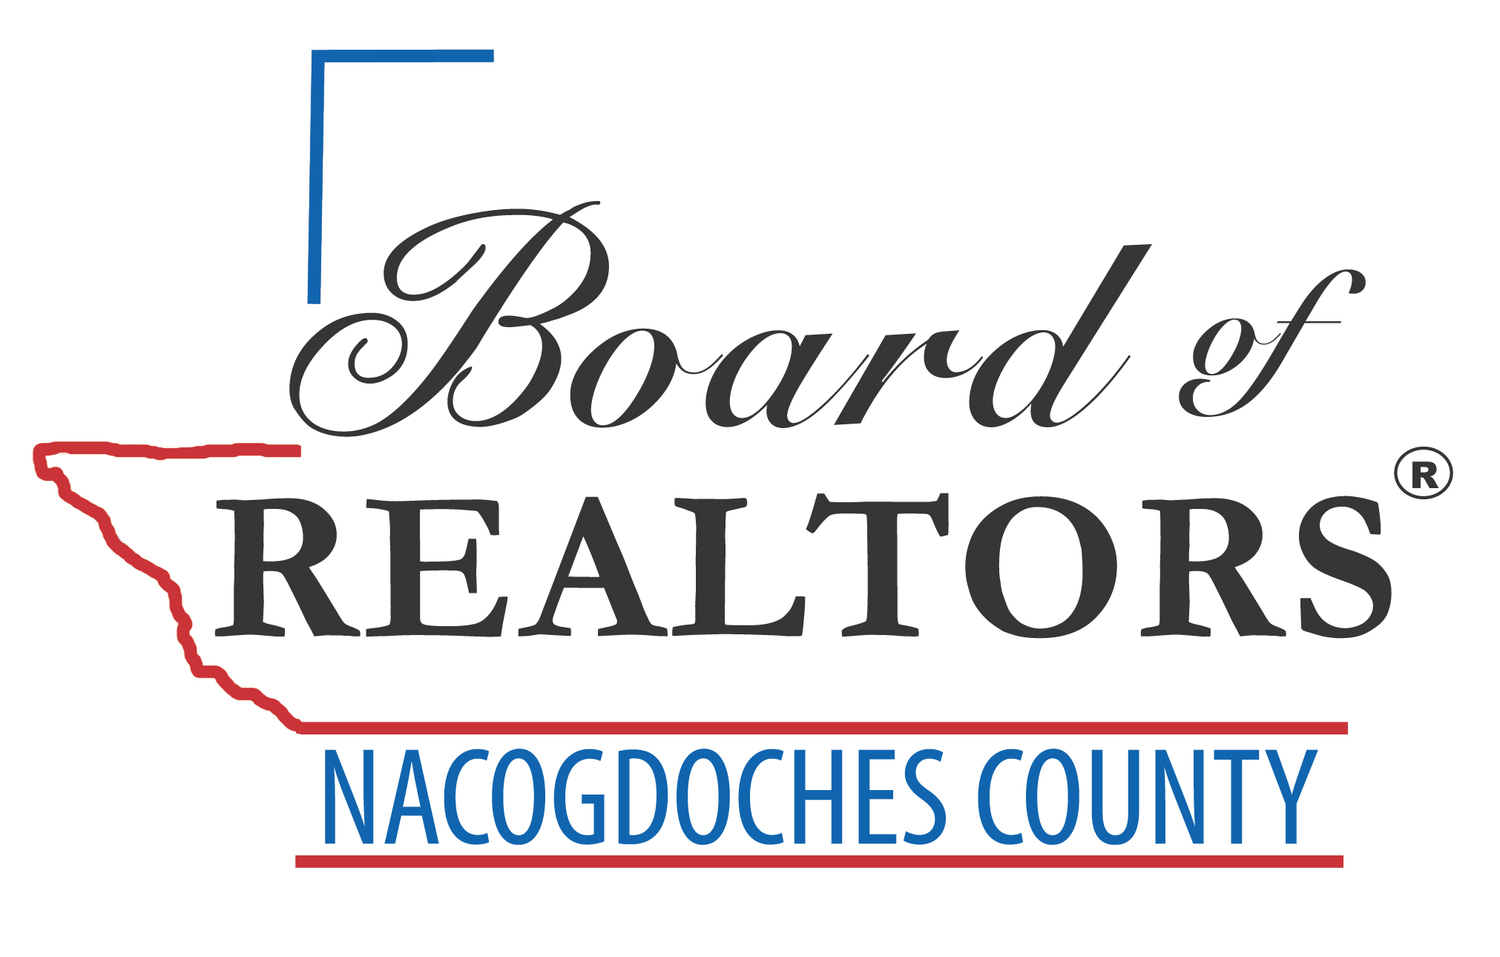 Nacogdoches County Board of REALTORS